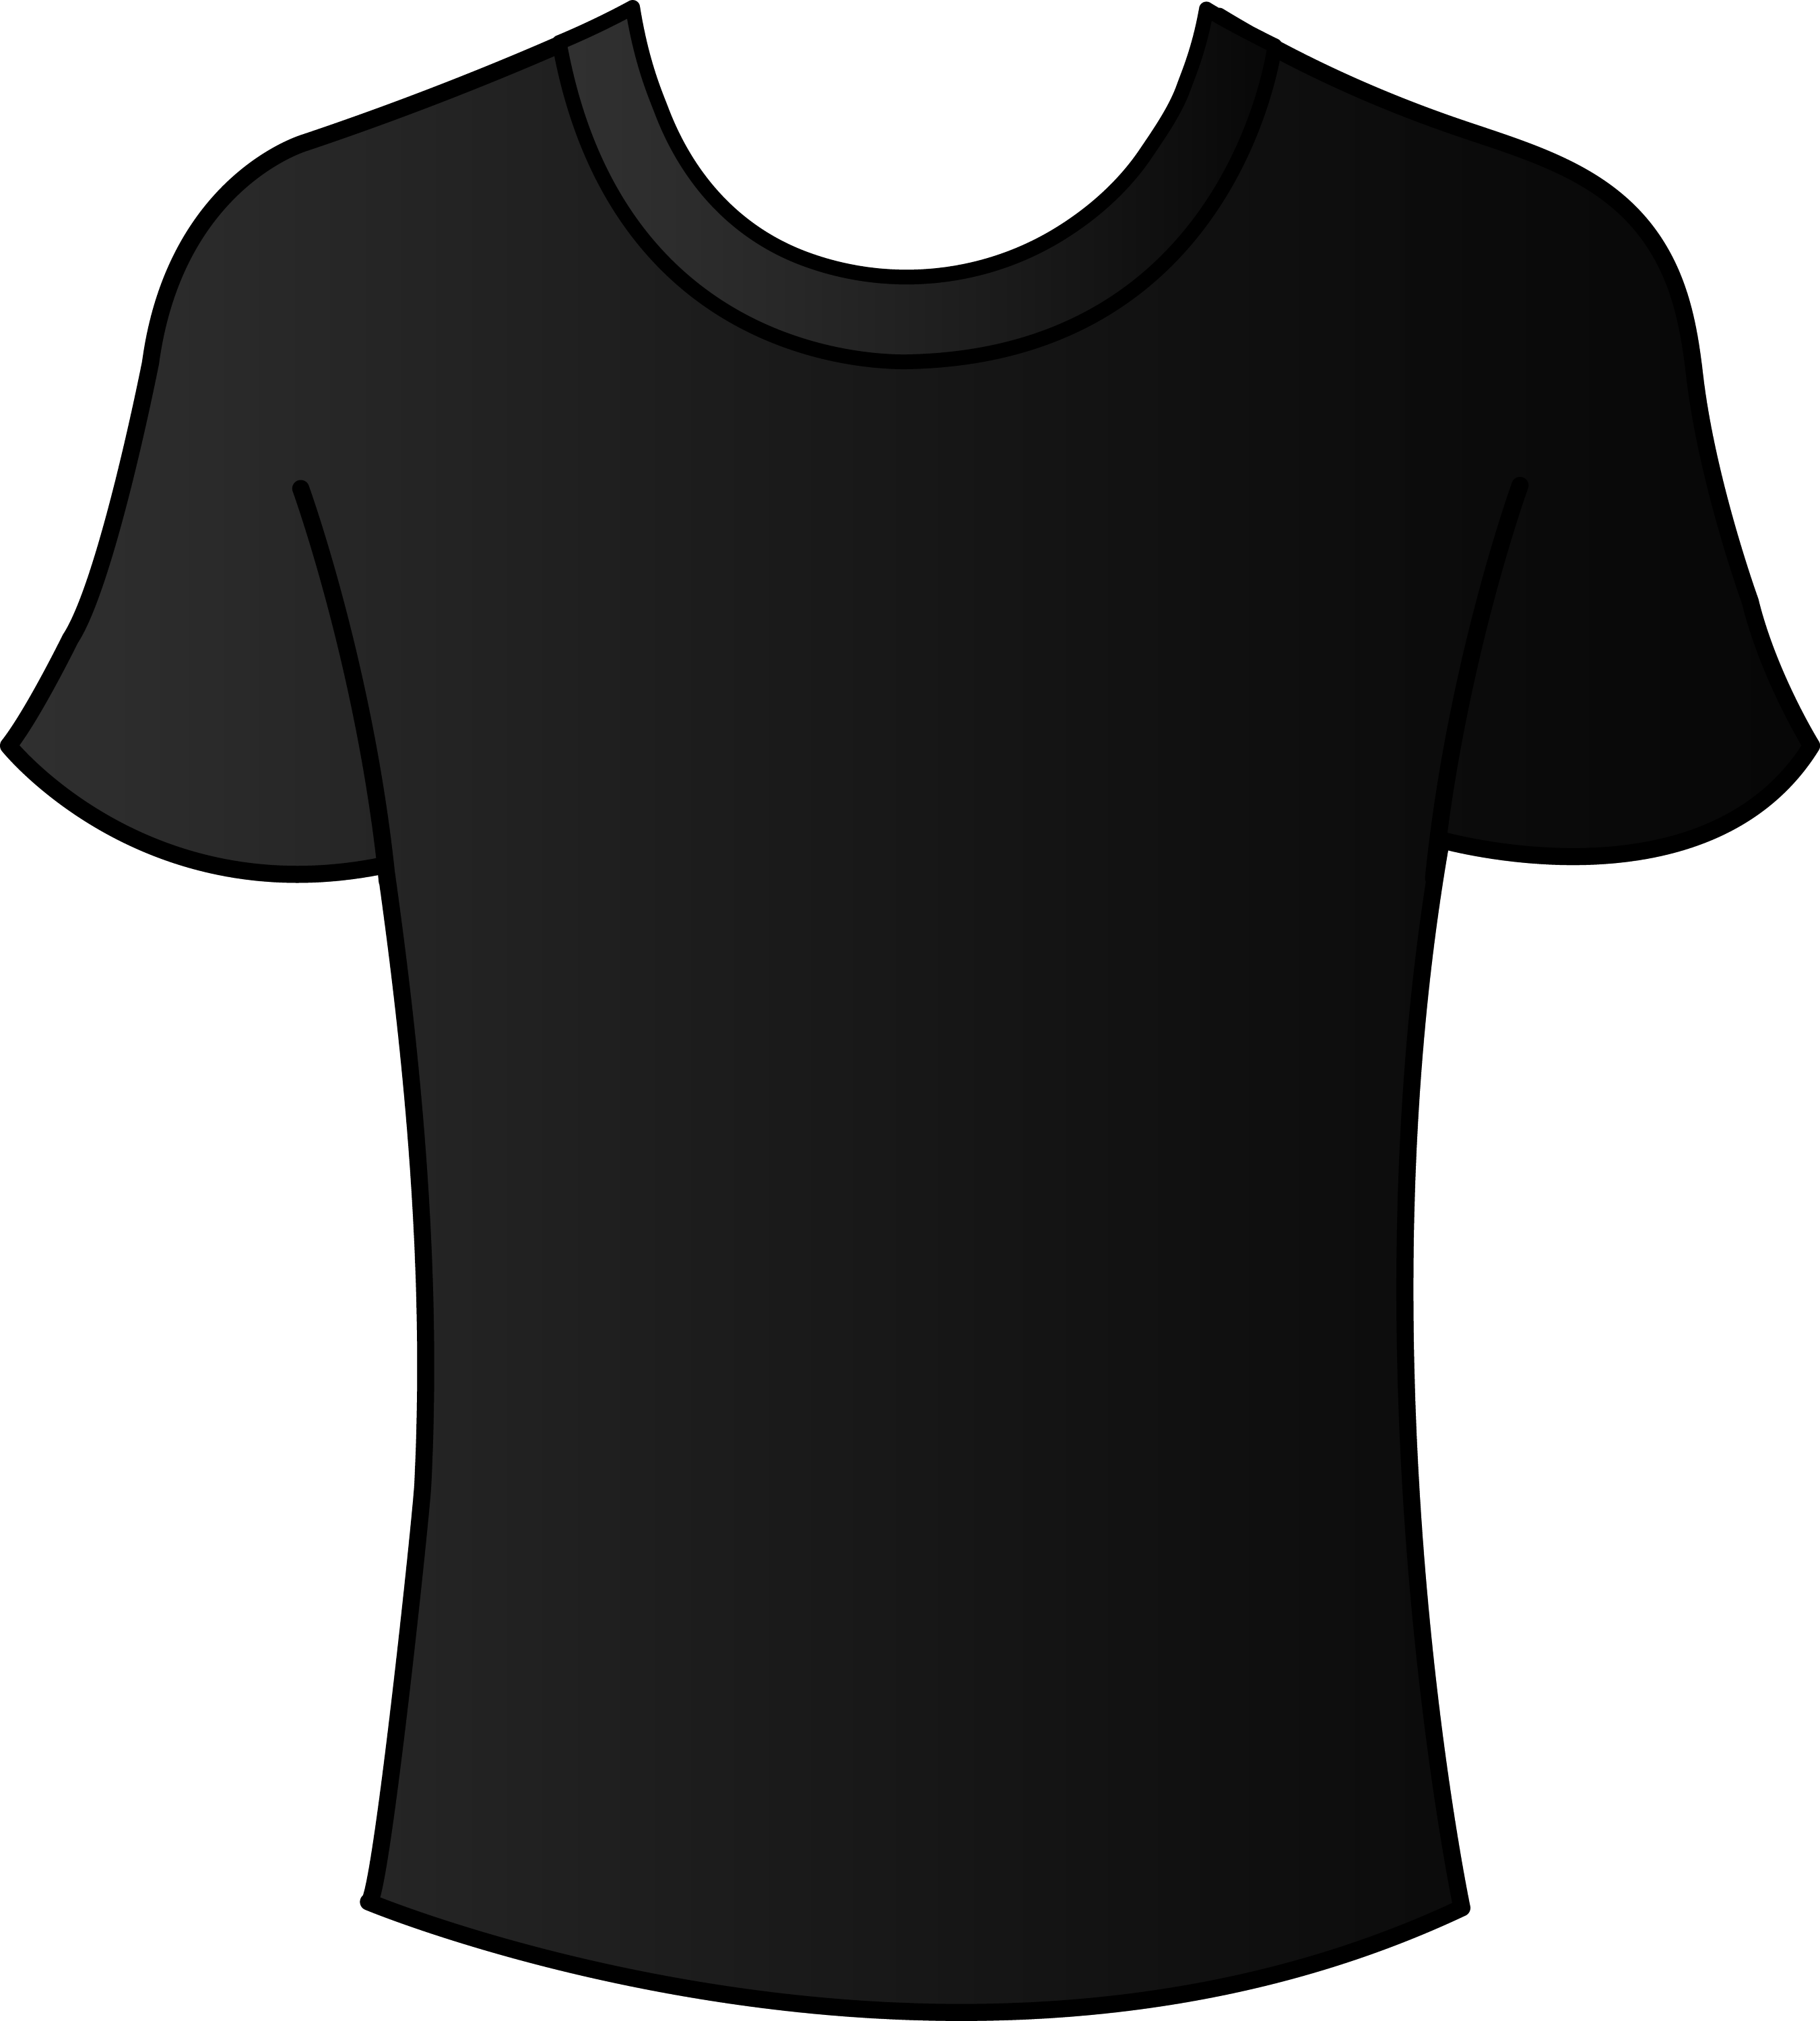 Black t shirt vector - Mens Black T Shirt Template Free Clip Art